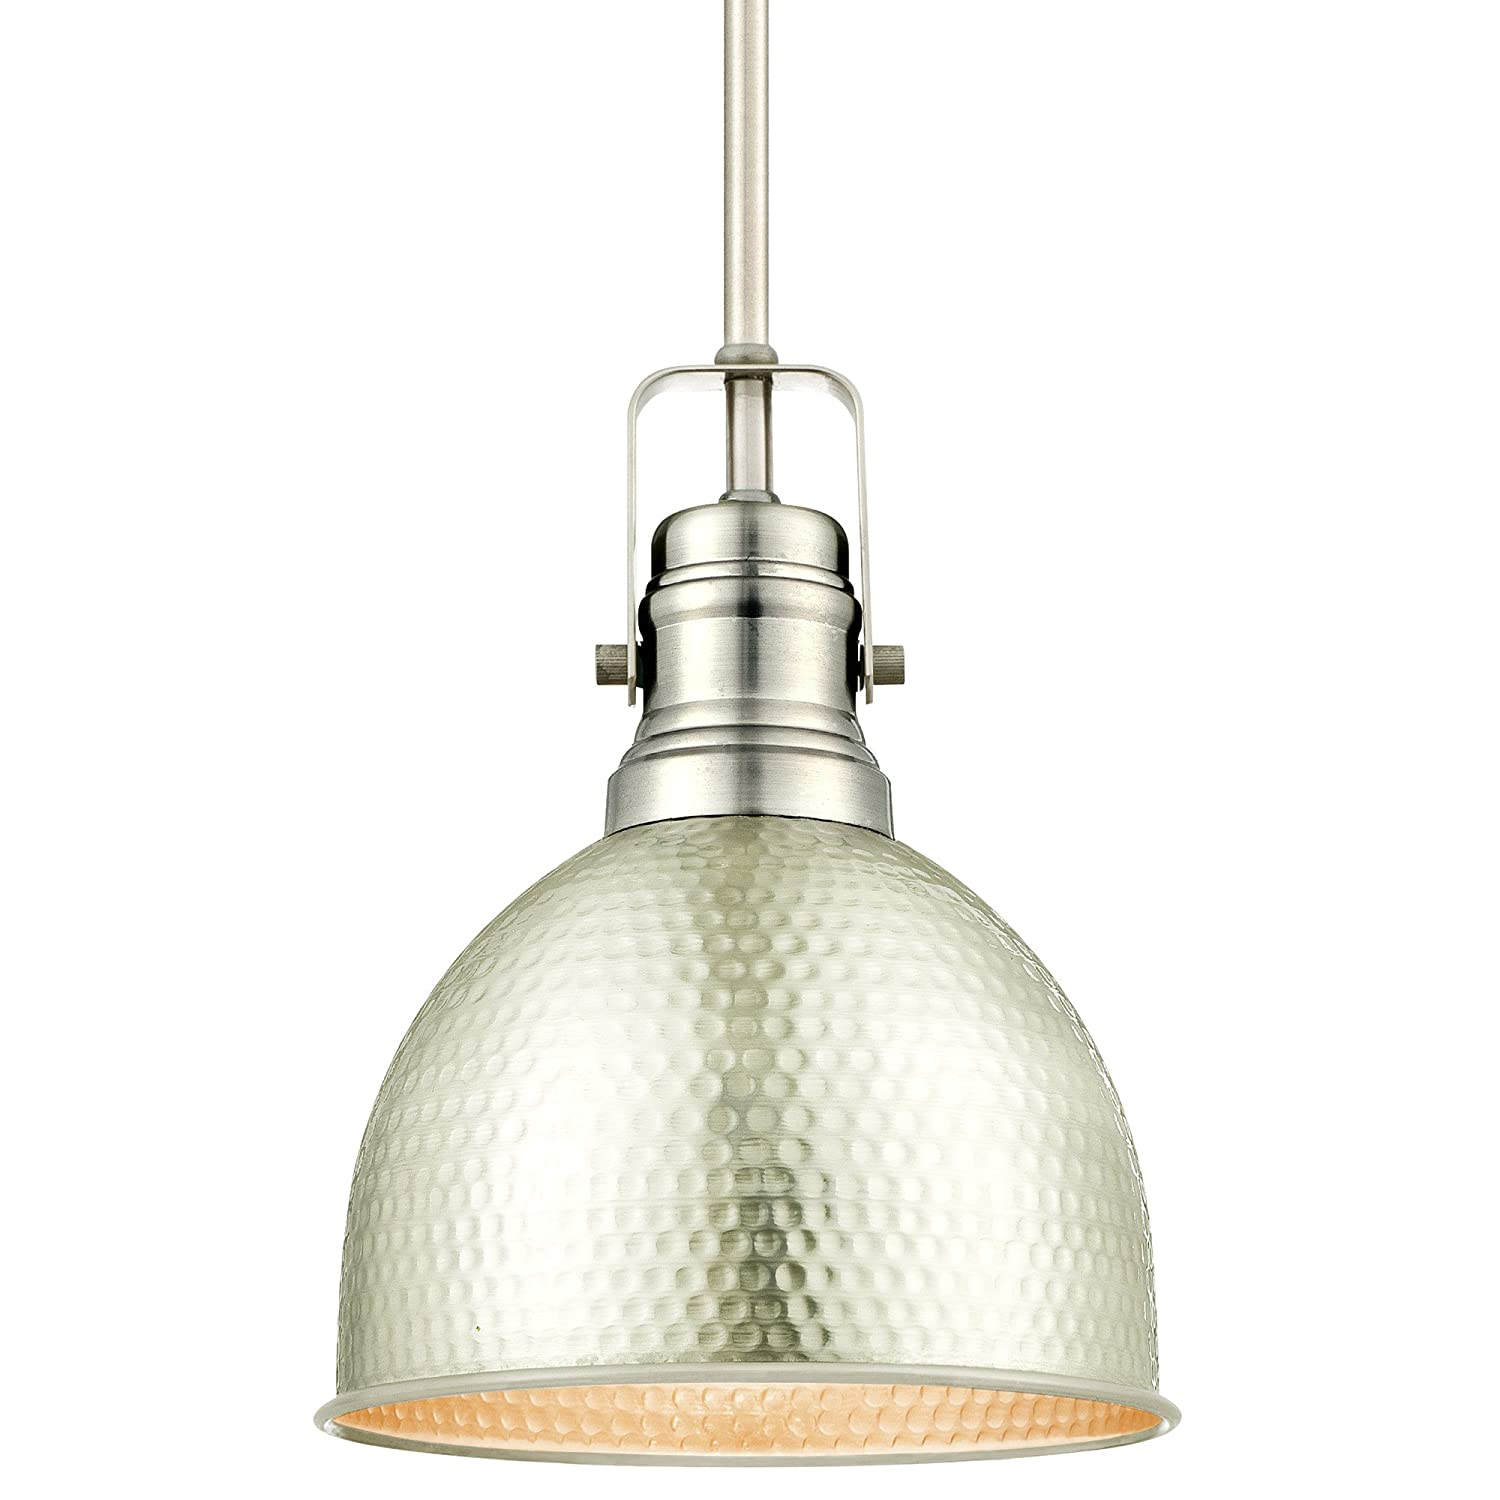 Rivet Mid Century Modern Industrial Glass Pendant Chandelier Fixture with Light Bulb – 12.5 x 15.5 Inches, 17-60 Inch Cord, Matte Black